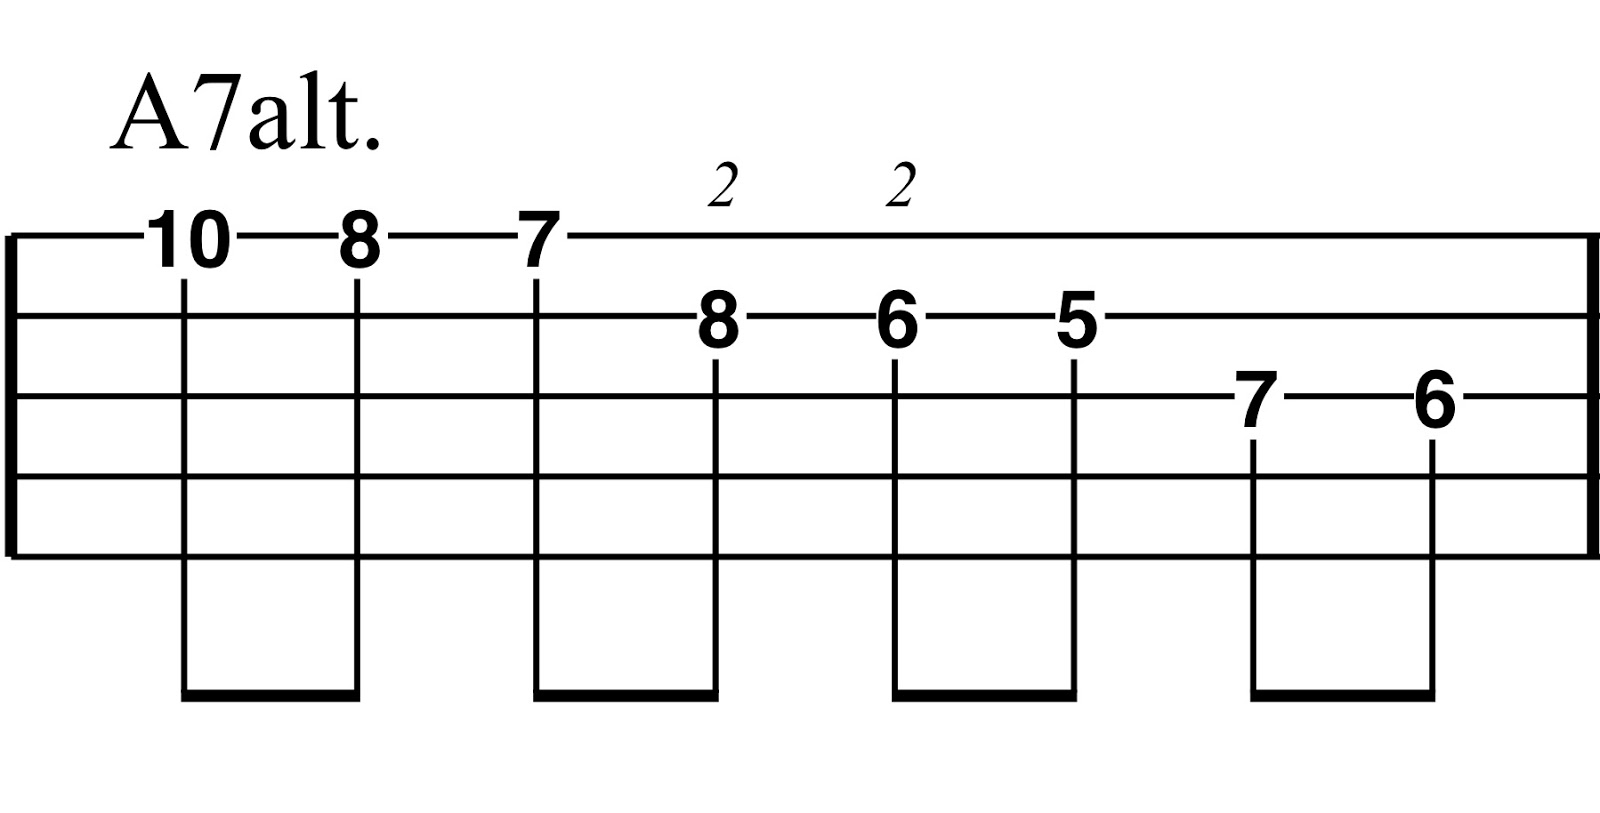 Jockos Jazz Banjo Page Or Relax You Can Do This A7 Chord Usually Another Altered 7th Which Actually Does Have Kind Of A C7 Ish Feel So The Note C 9 Technically B But Whos Counting Generally